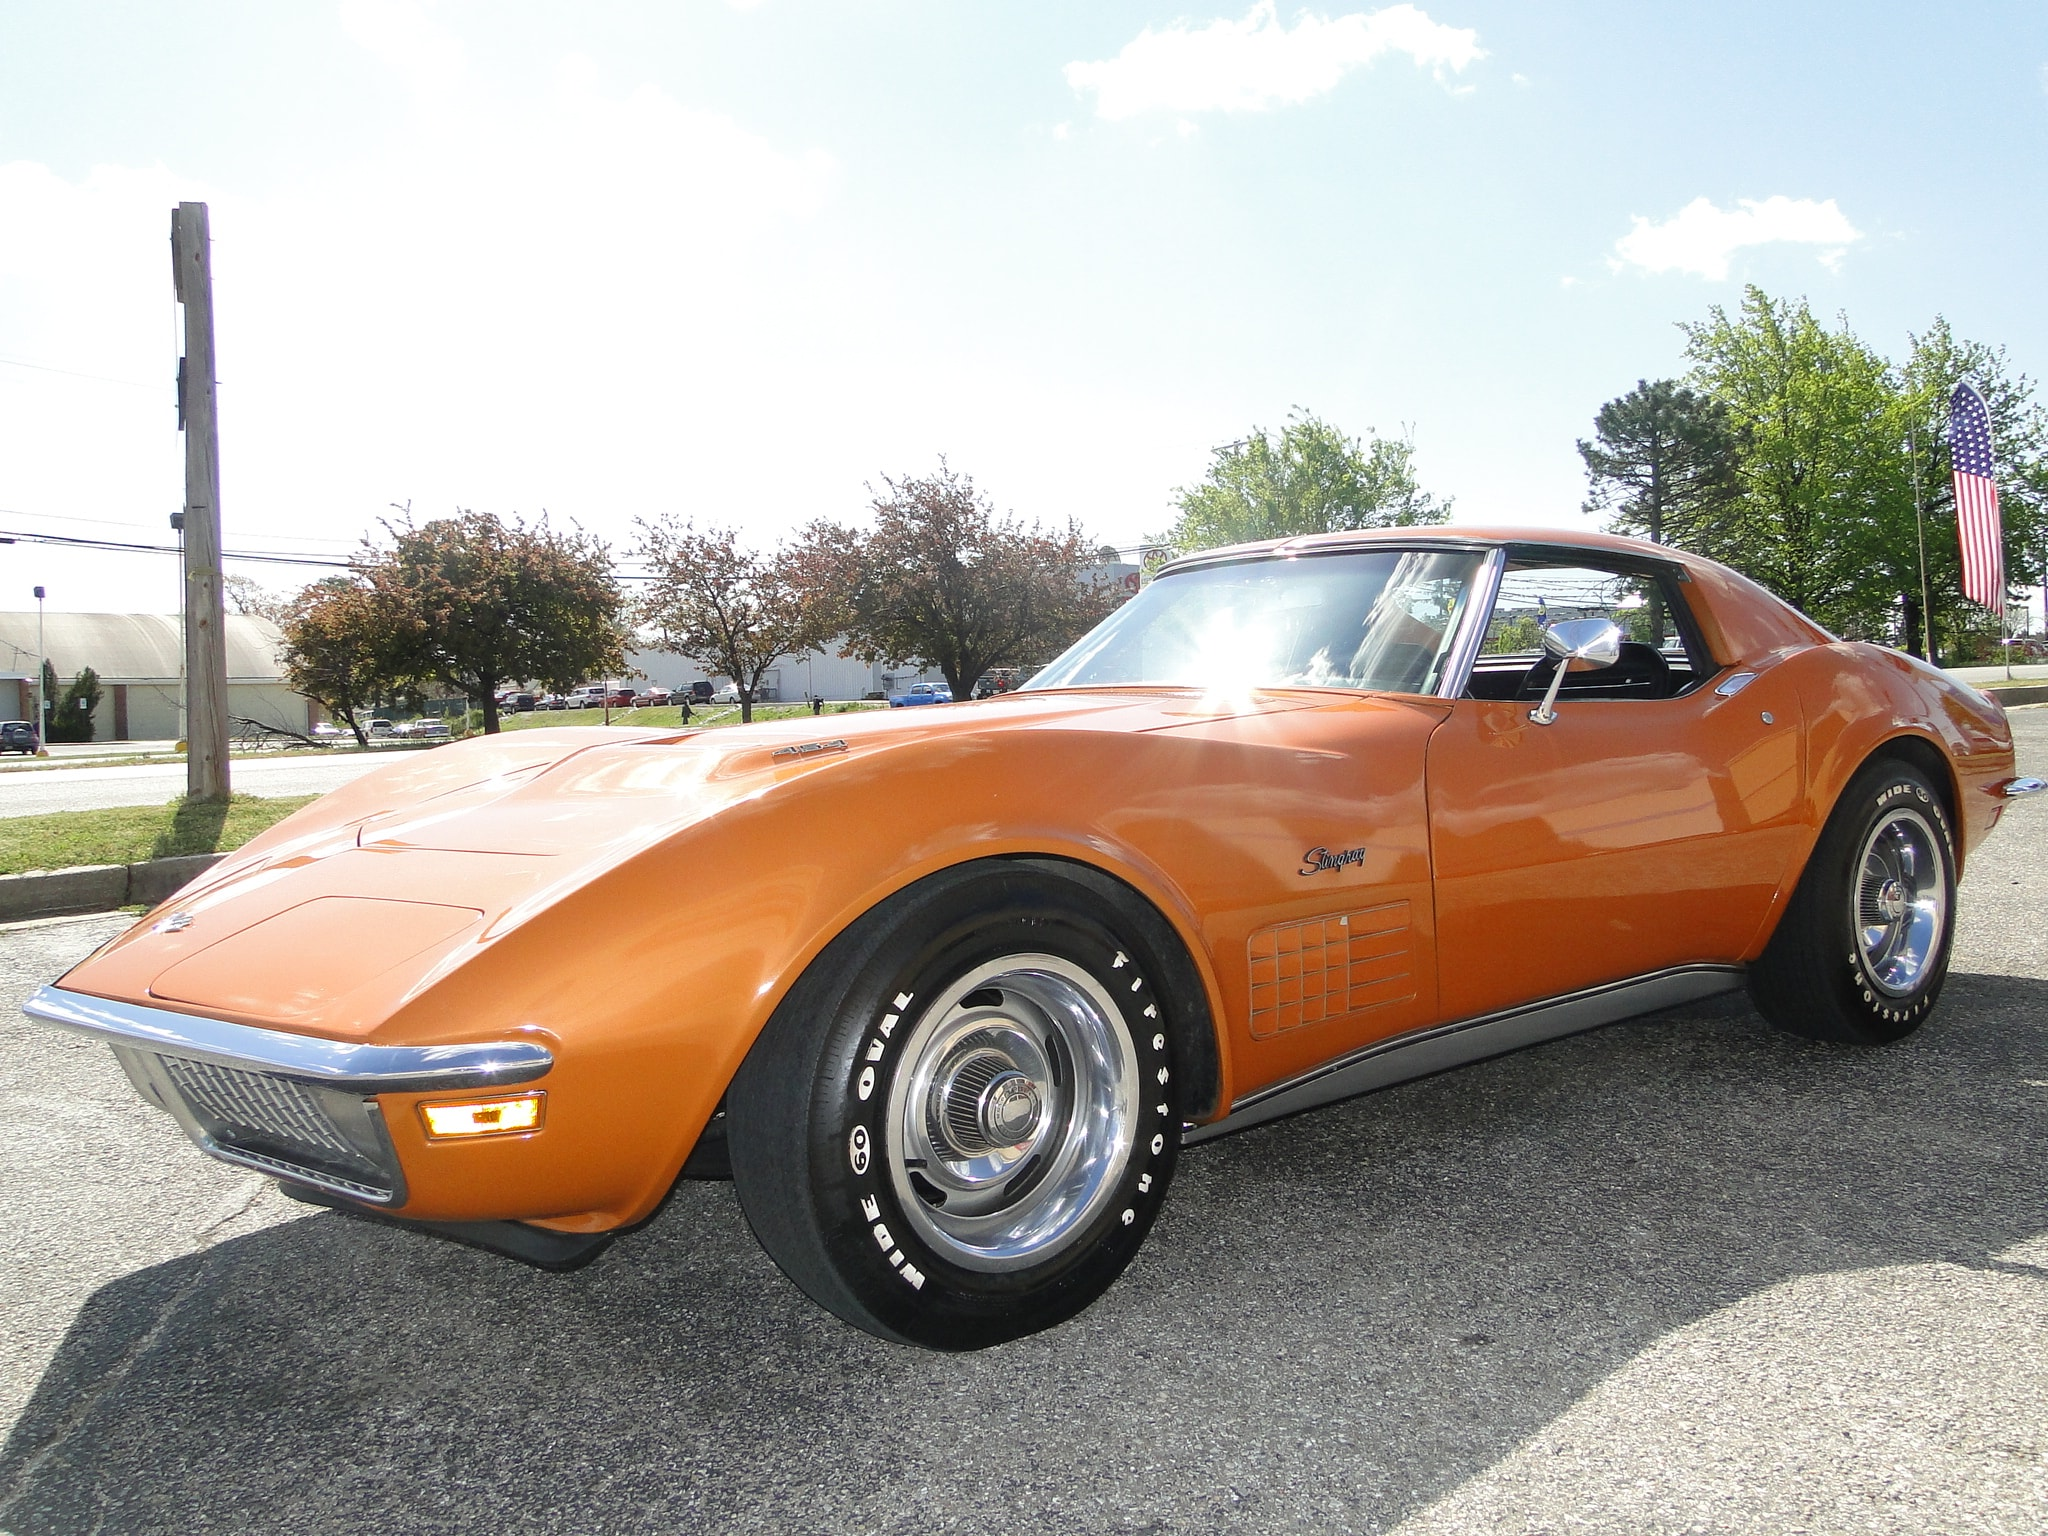 1971 Chevrolet Corvette 454 Coupe Glen Burnie MD